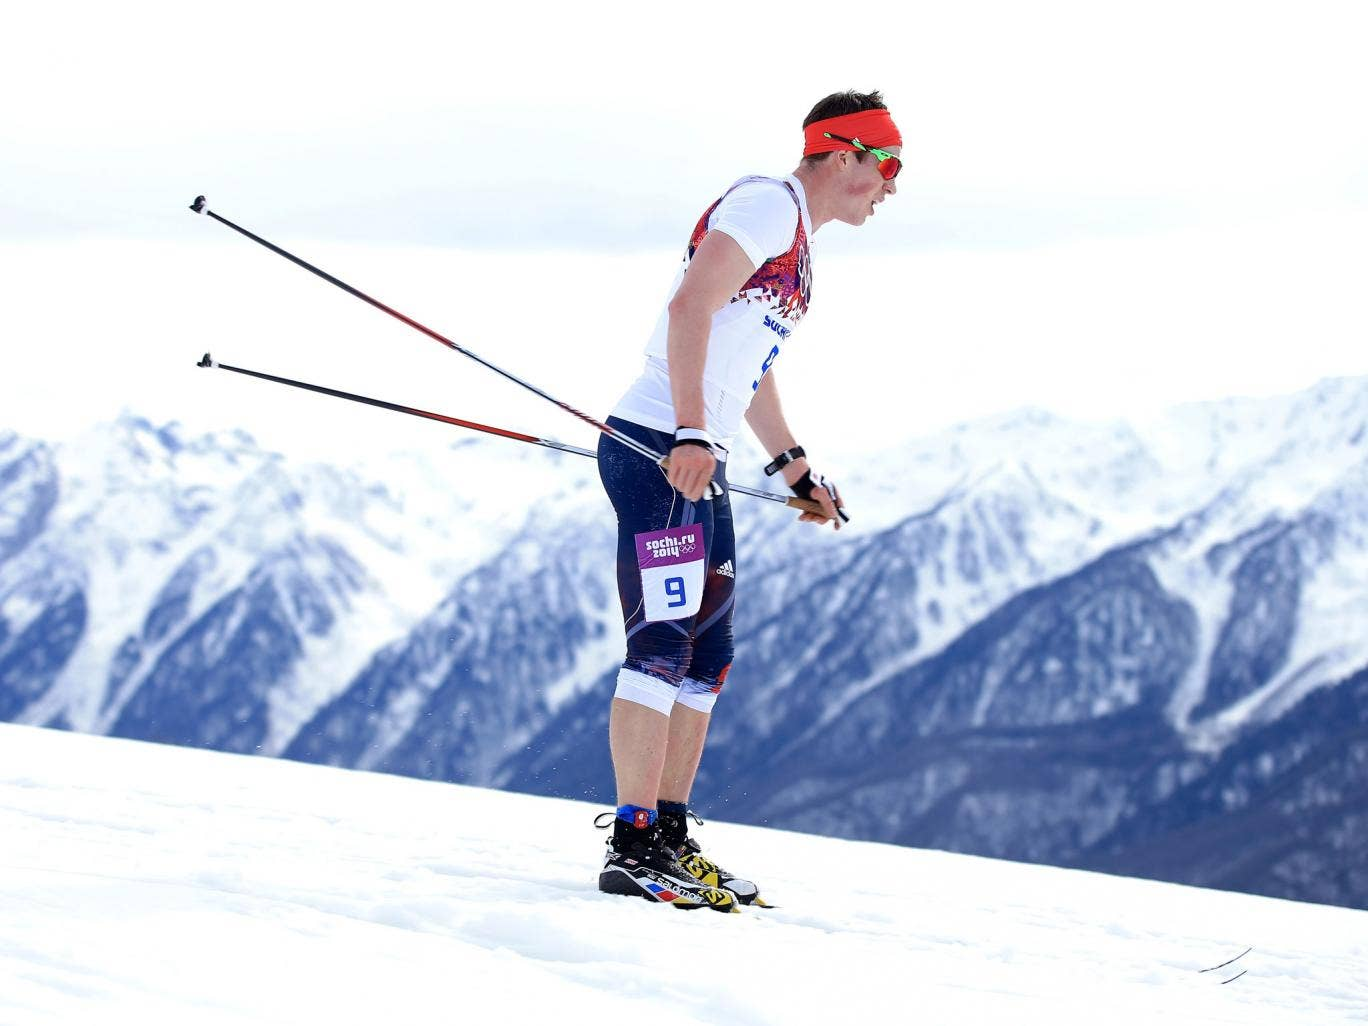 Andrew Musgrave finished 44th in the men's 15km cross country classic